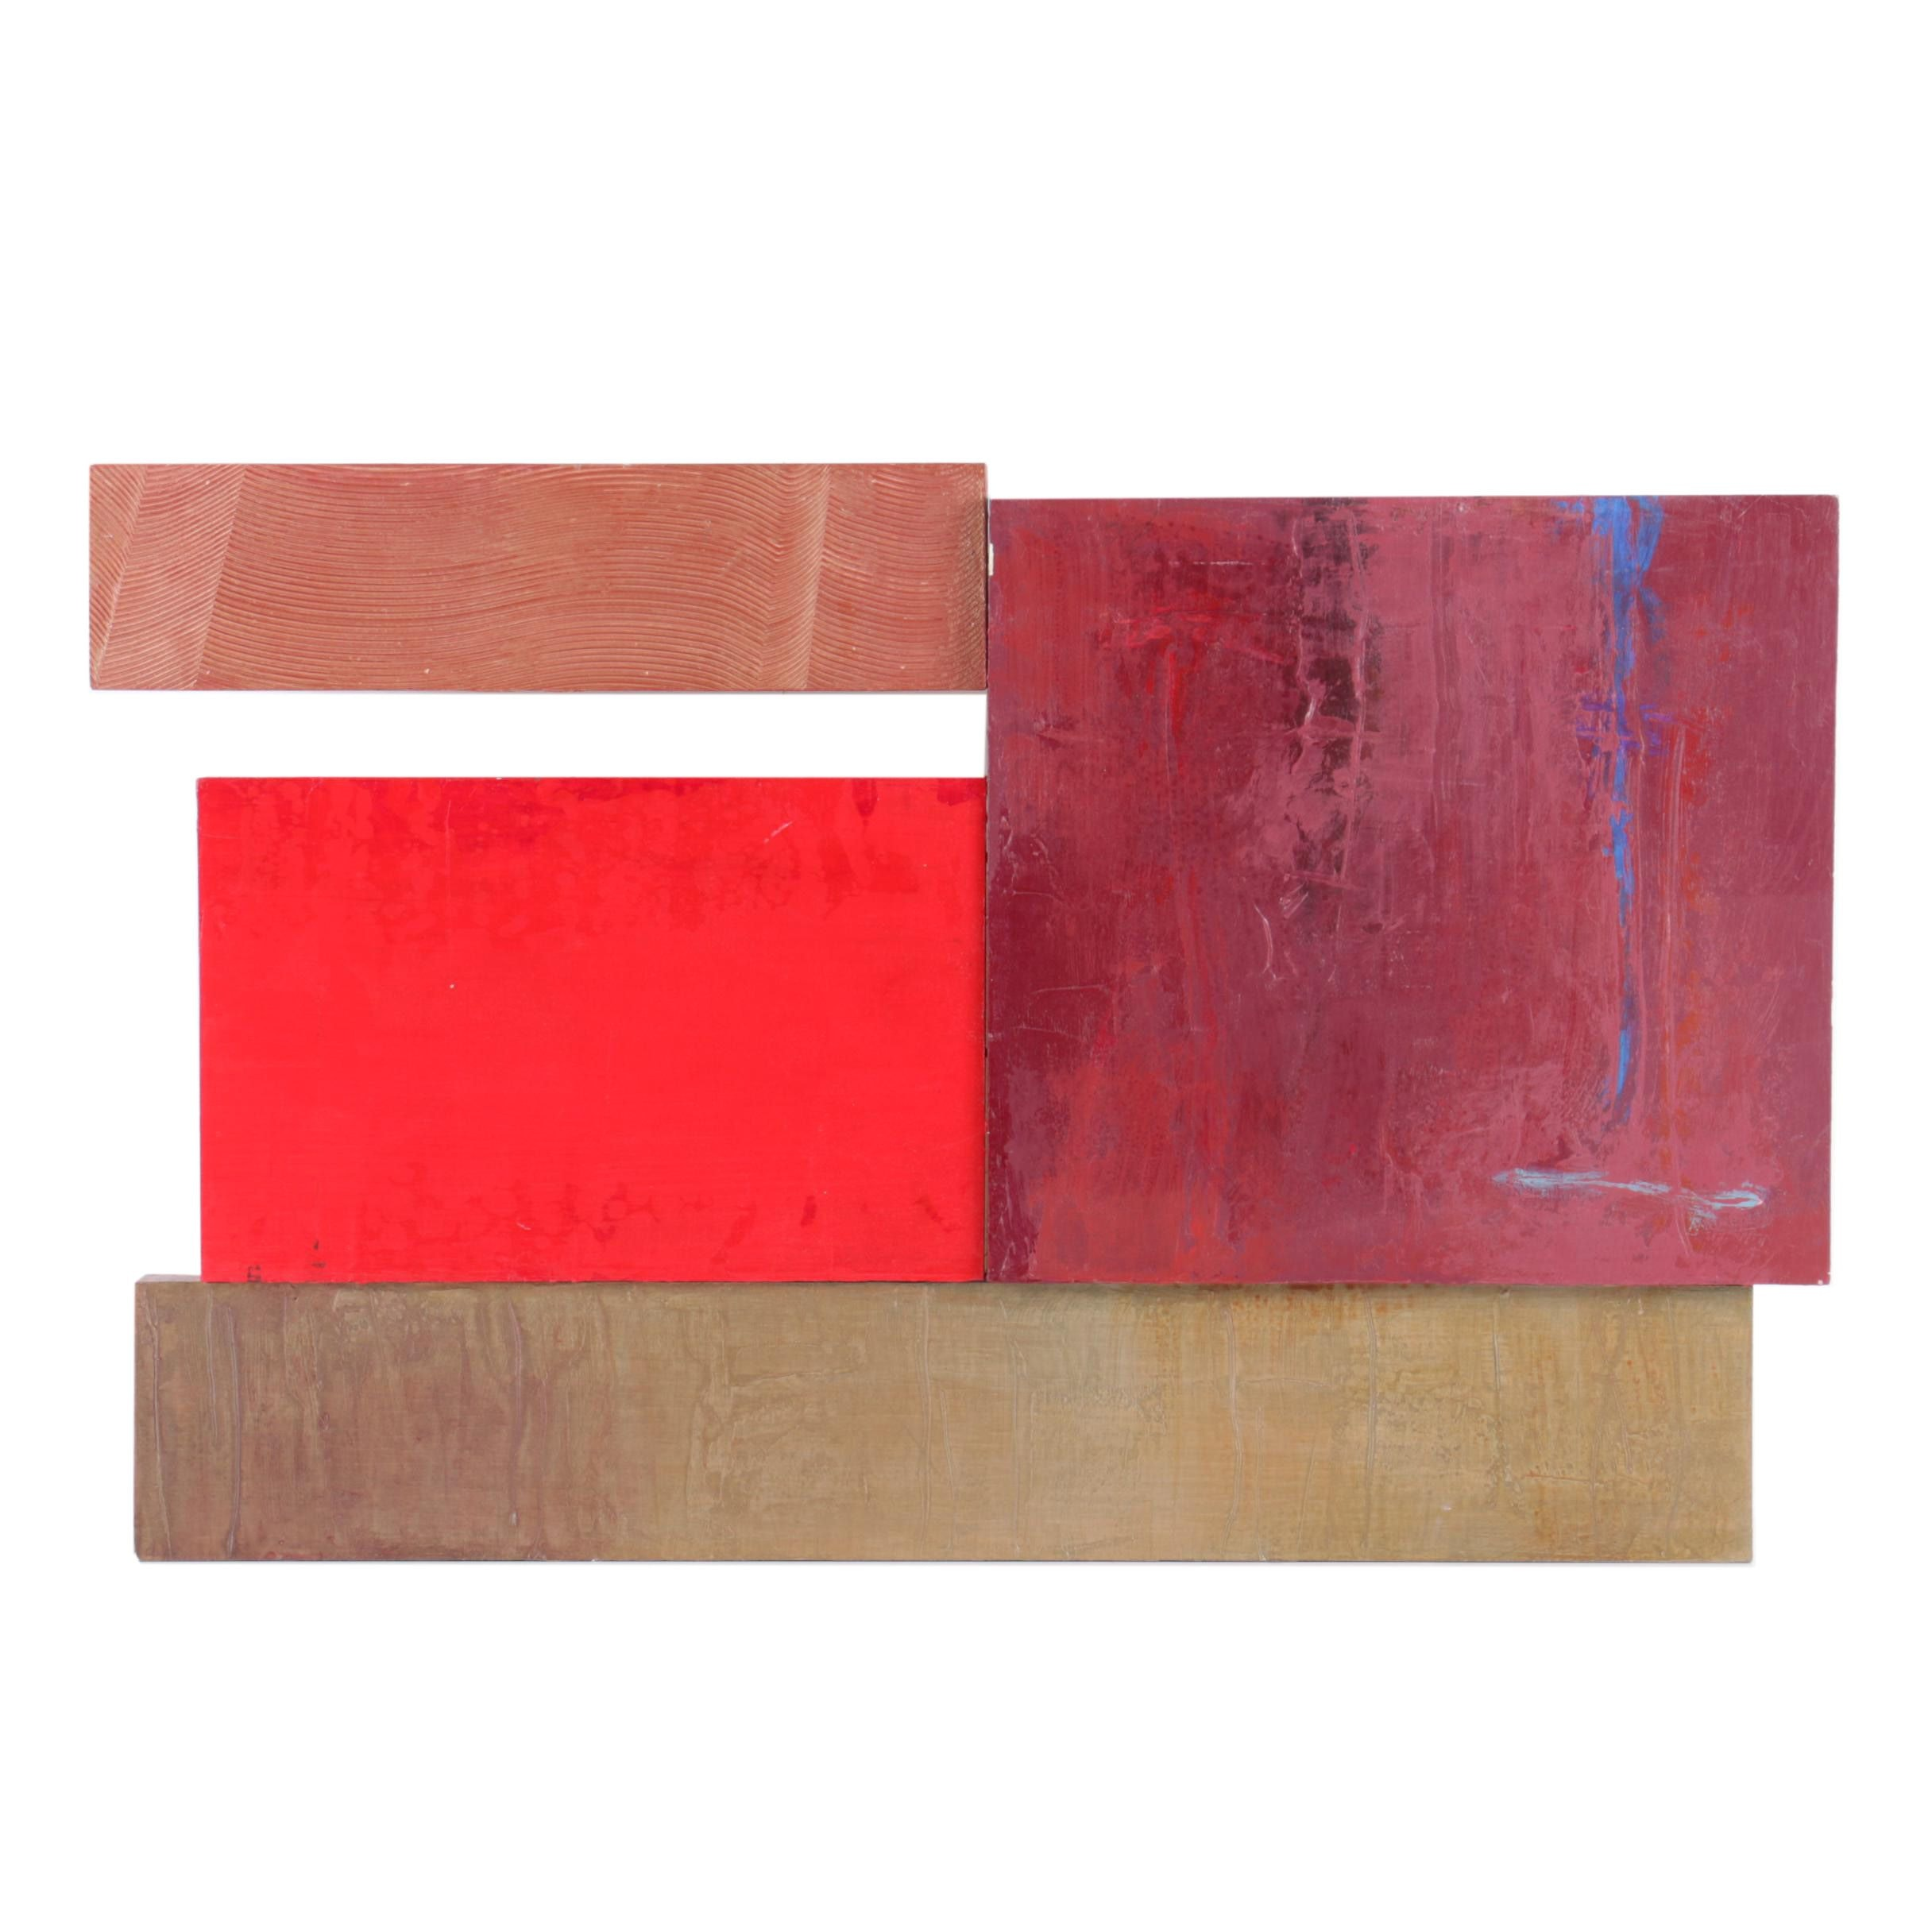 Nonobjective Sculptural Painting